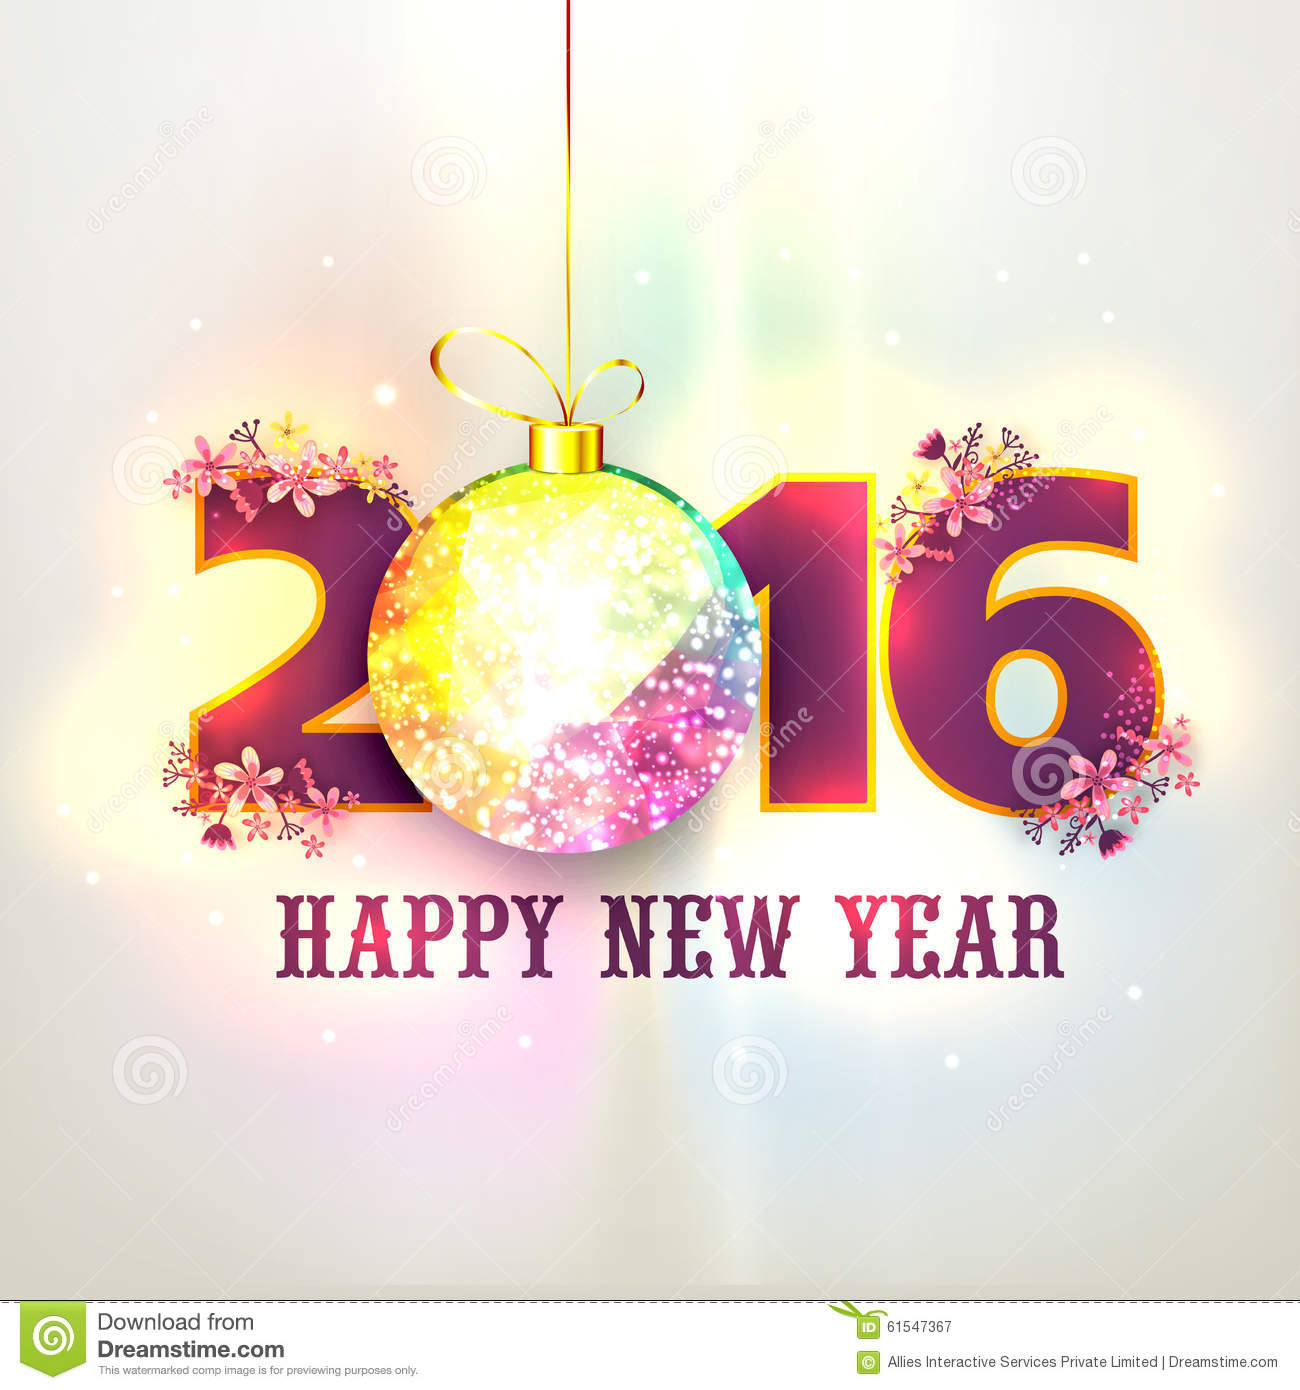 greeting card with stylish text for happy new year stock